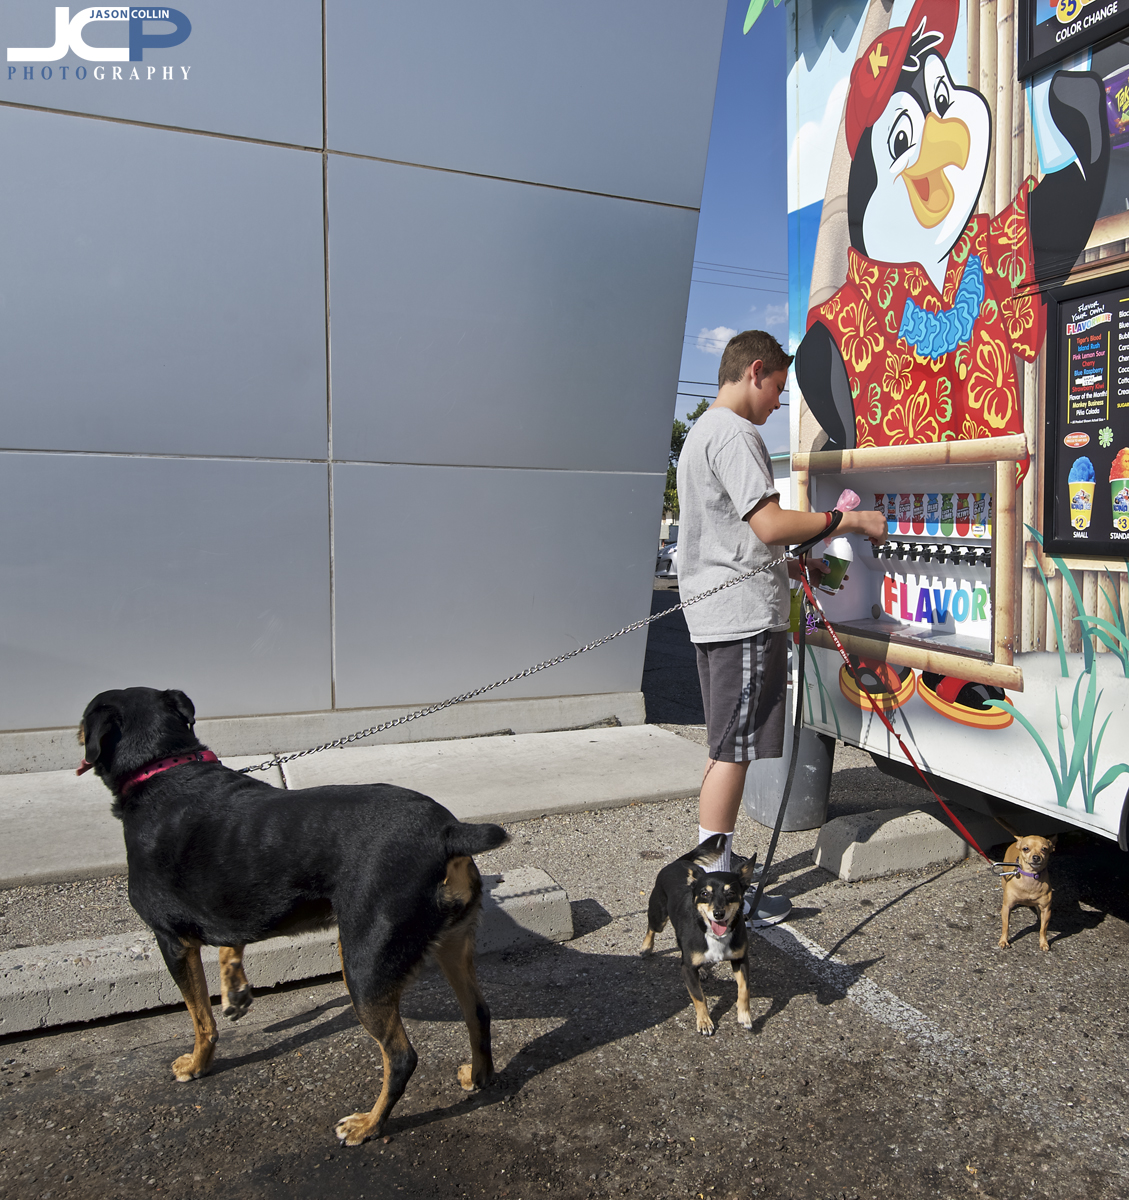 Even dogs are excited about Kona Ice! - Nikon D750 with Tamron 15-30mm f/2.8 @ f/11 1/200th ISO 100